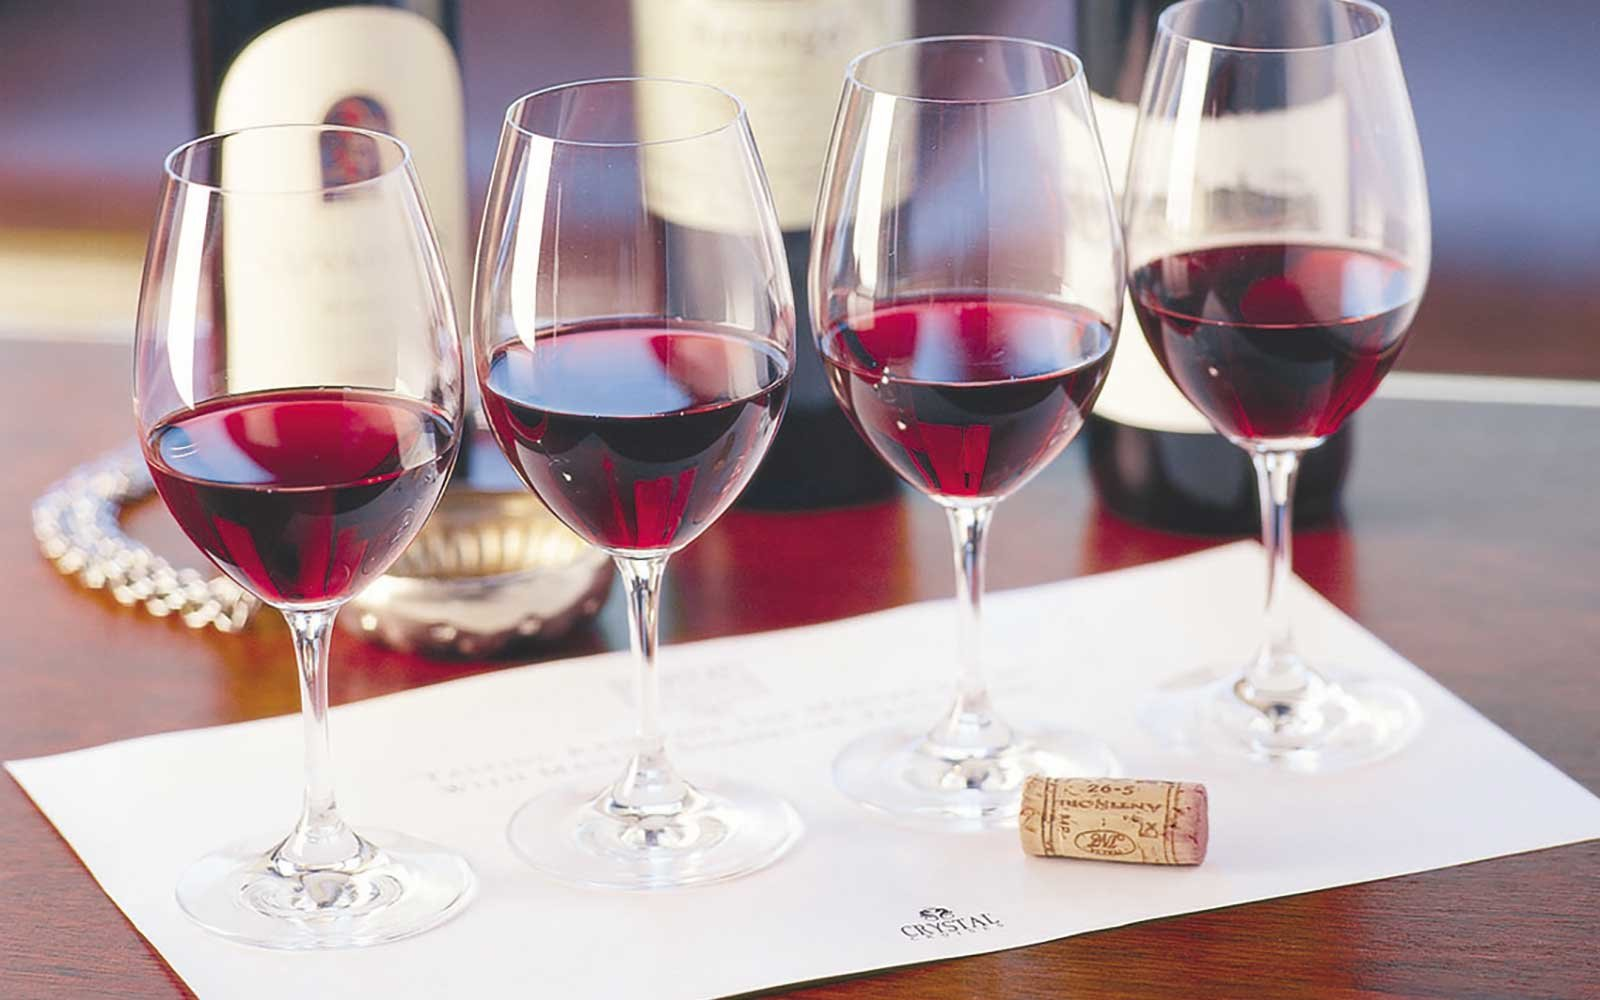 Wine tasting on board the Crystal Serenity cruise ship